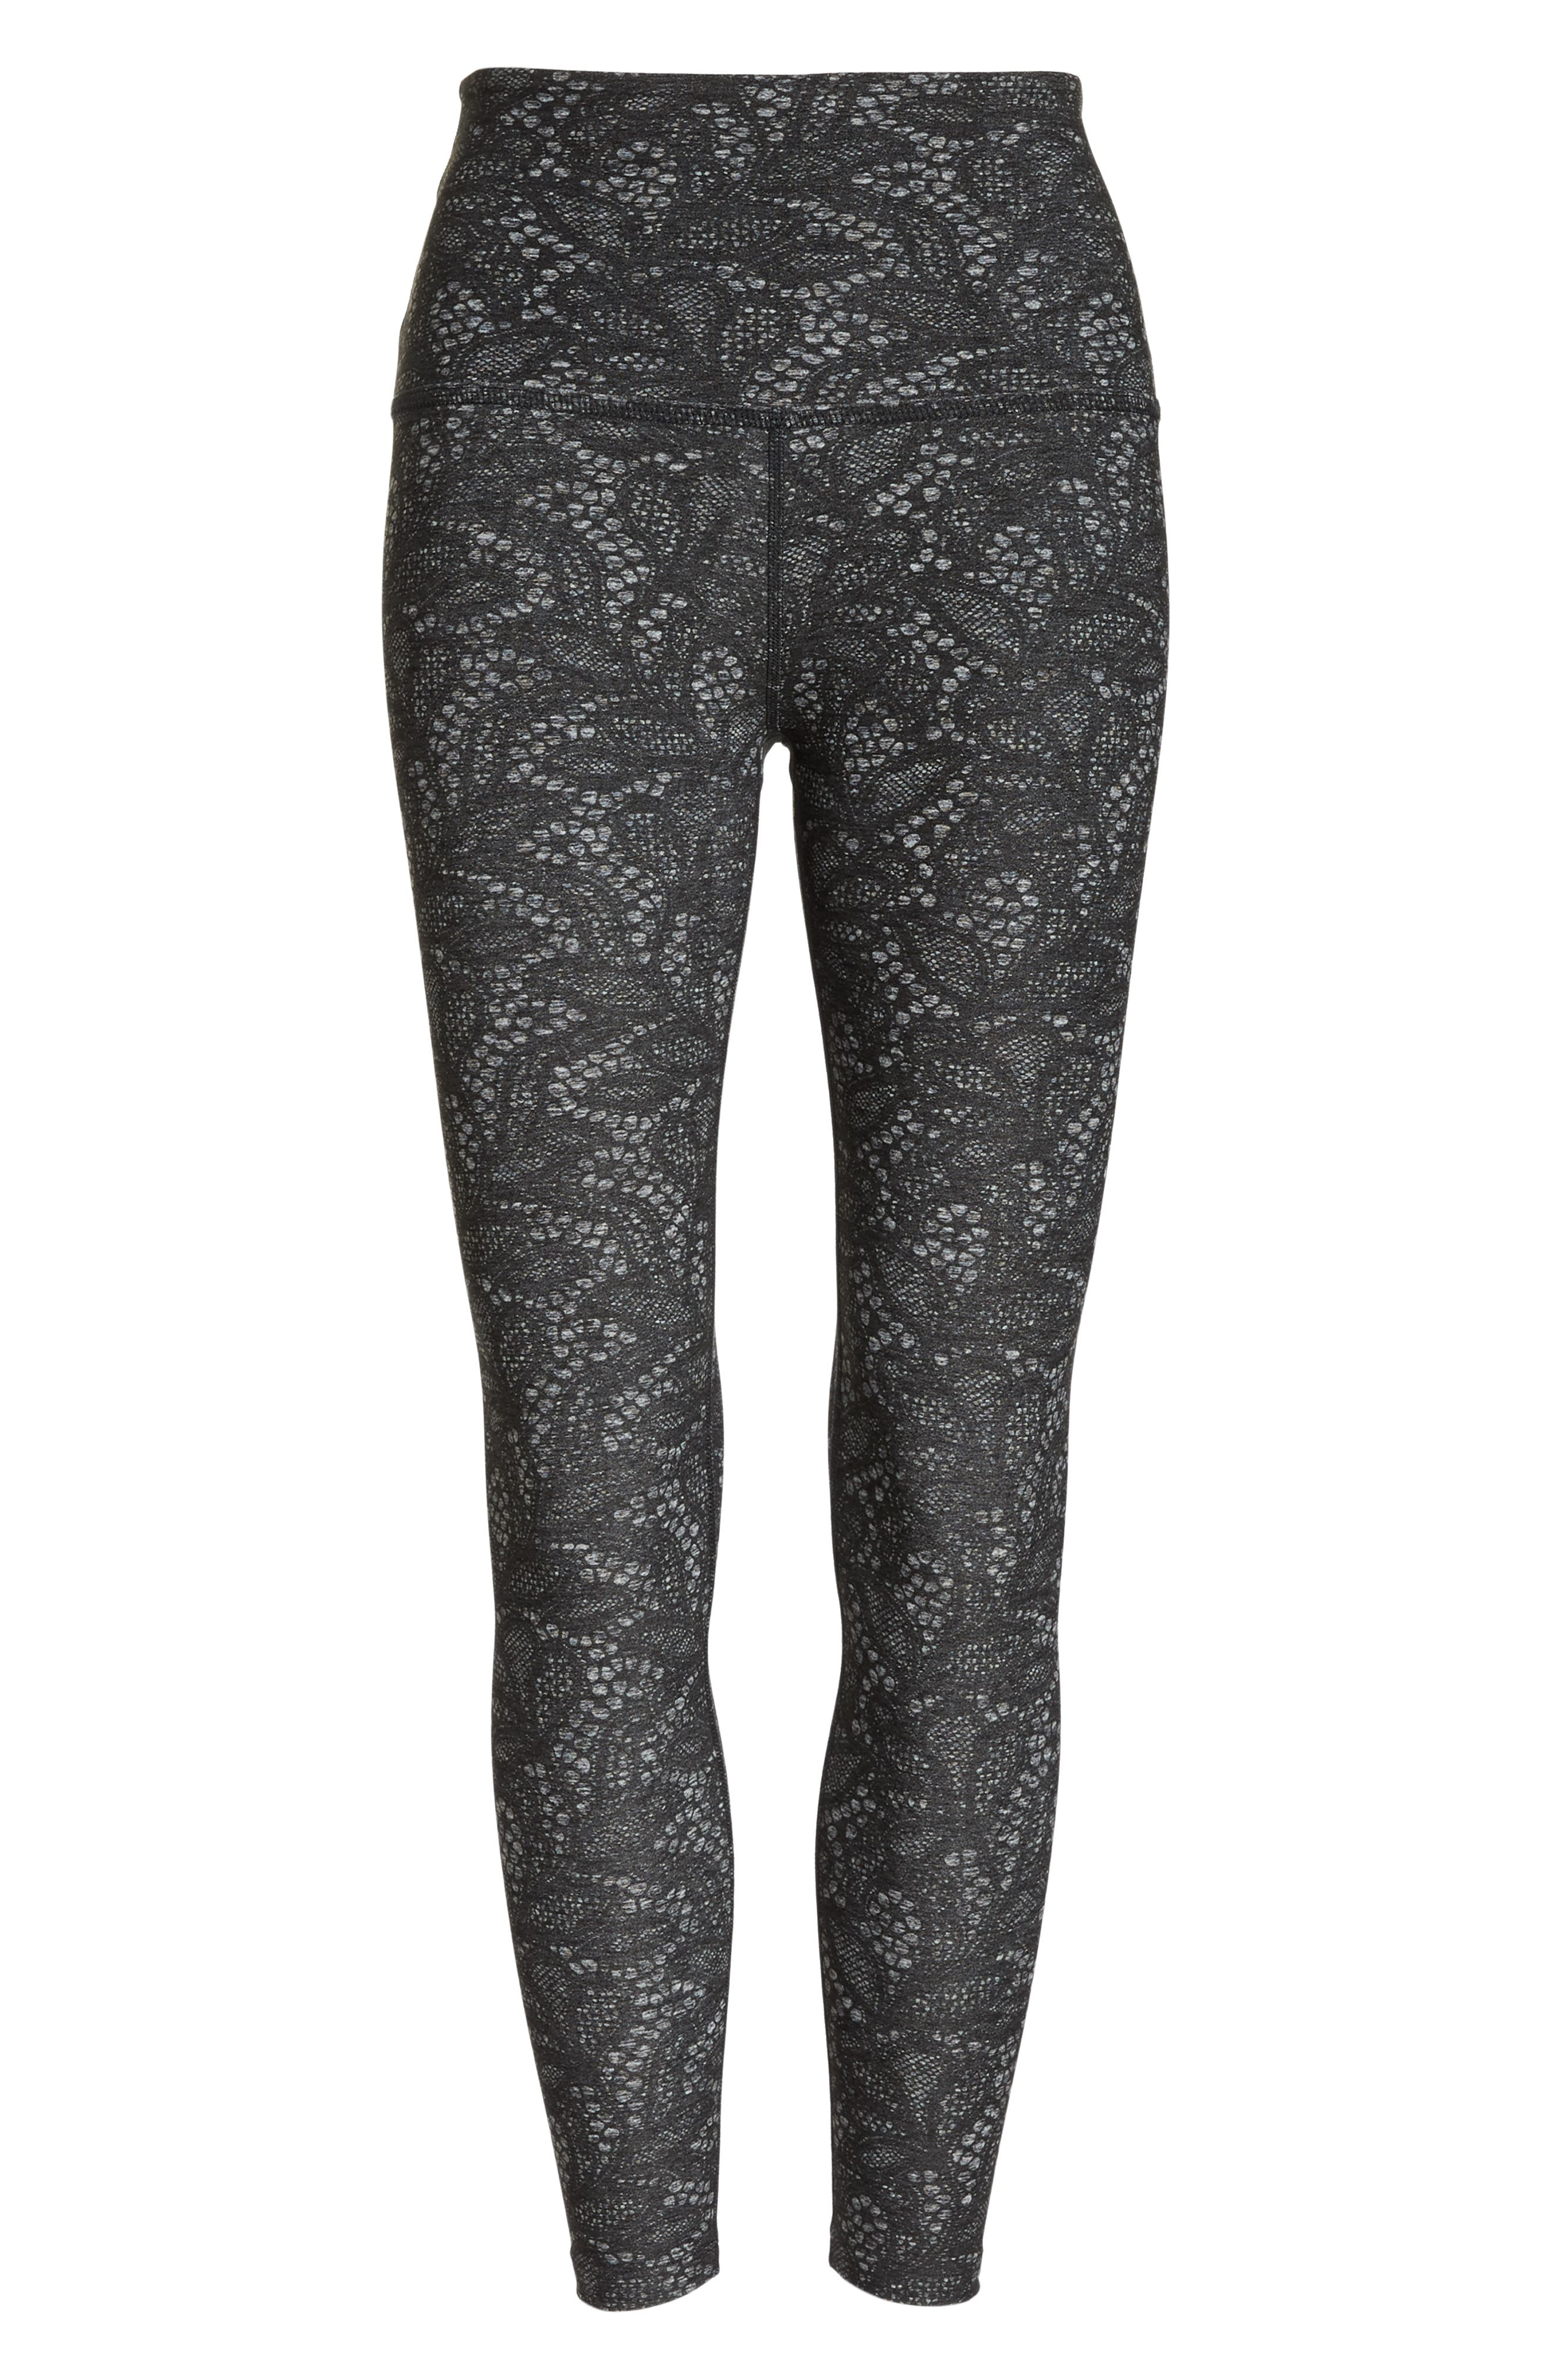 So Lacy Space Dye High Waist Leggings,                             Alternate thumbnail 7, color,                             020